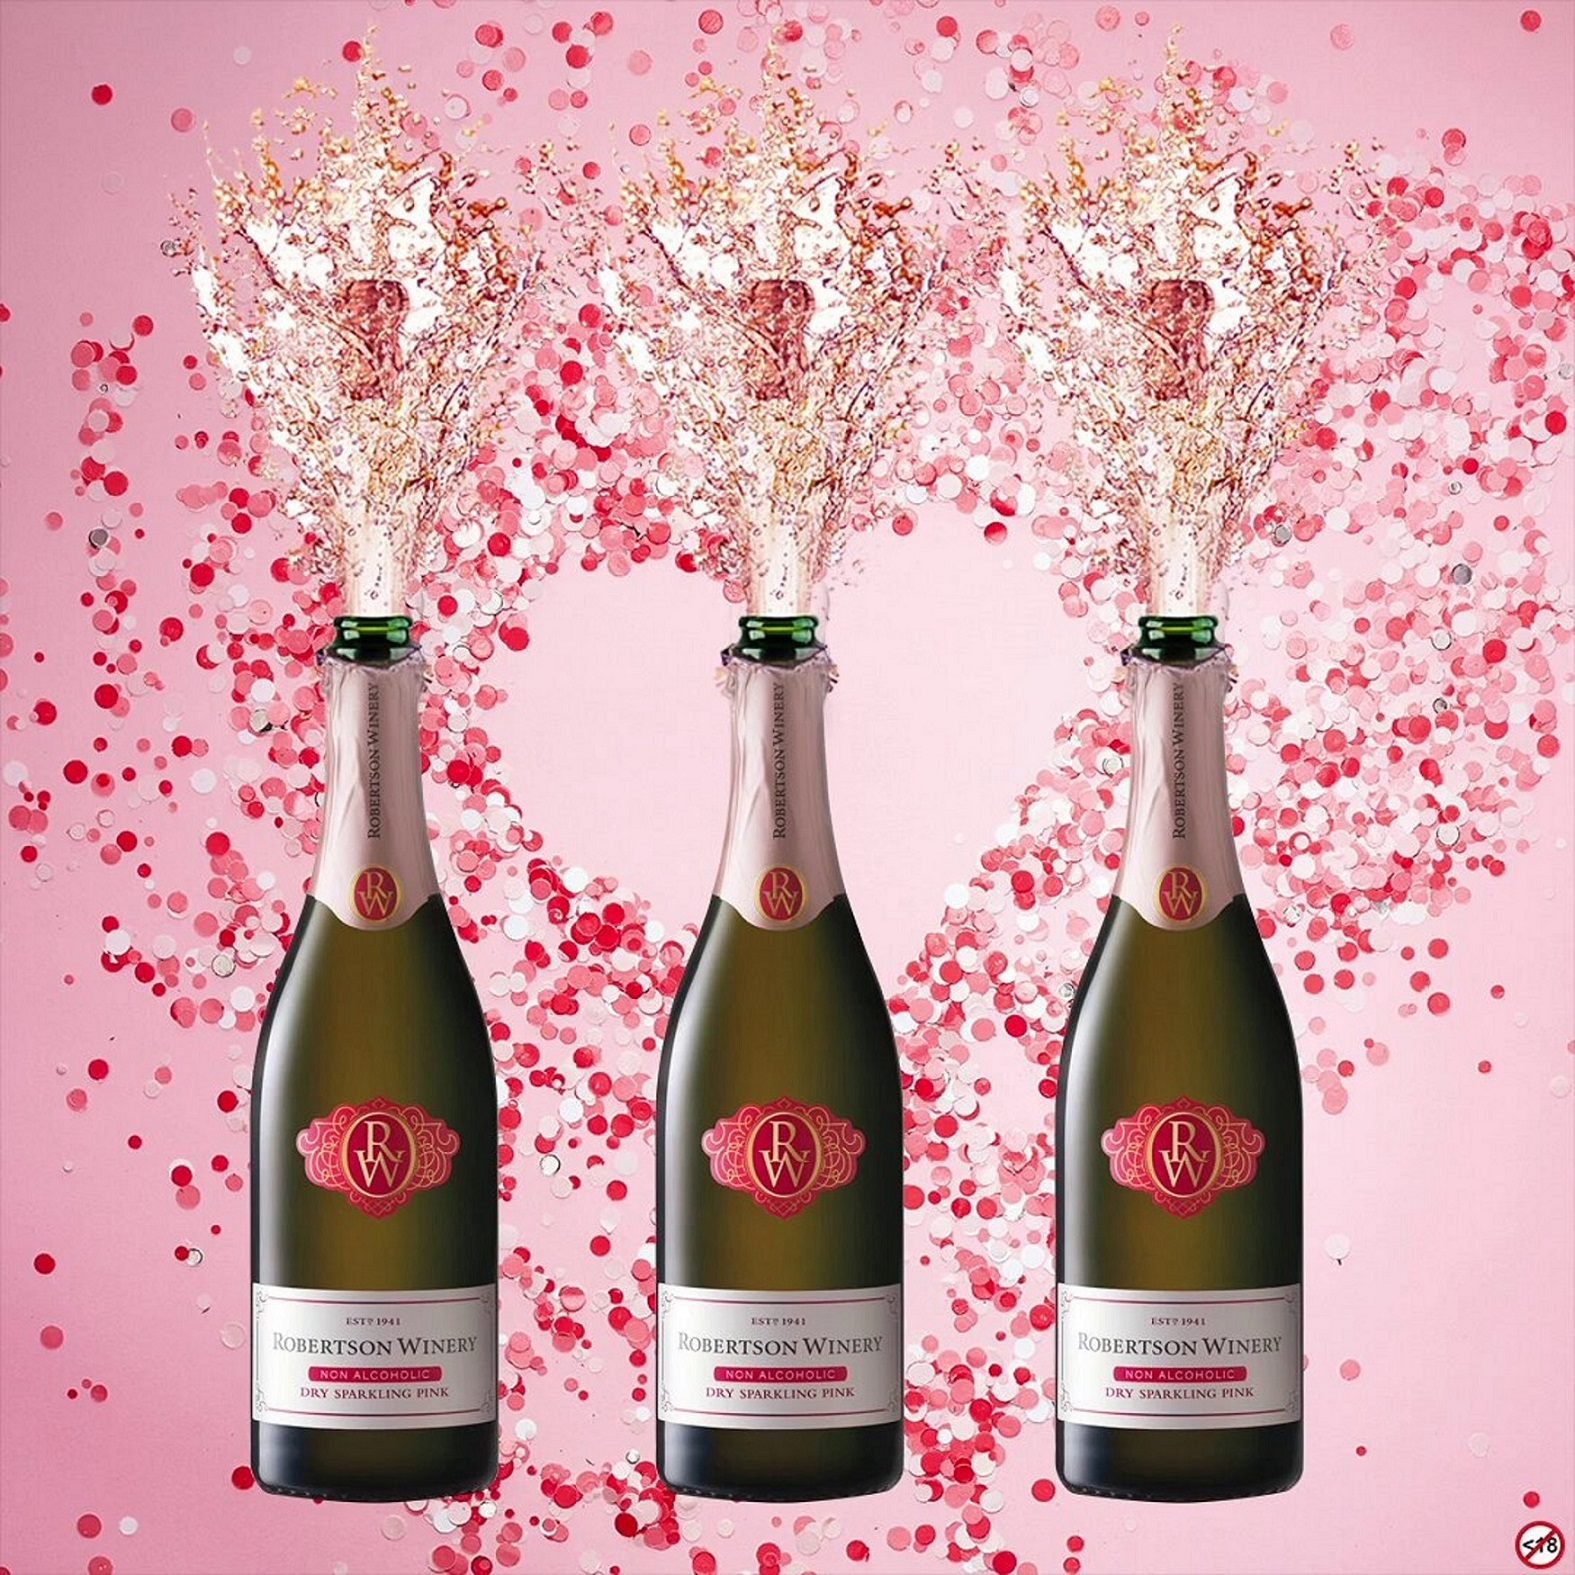 Robertson Winery Non-Alcoholic Dry Sparkling Pink